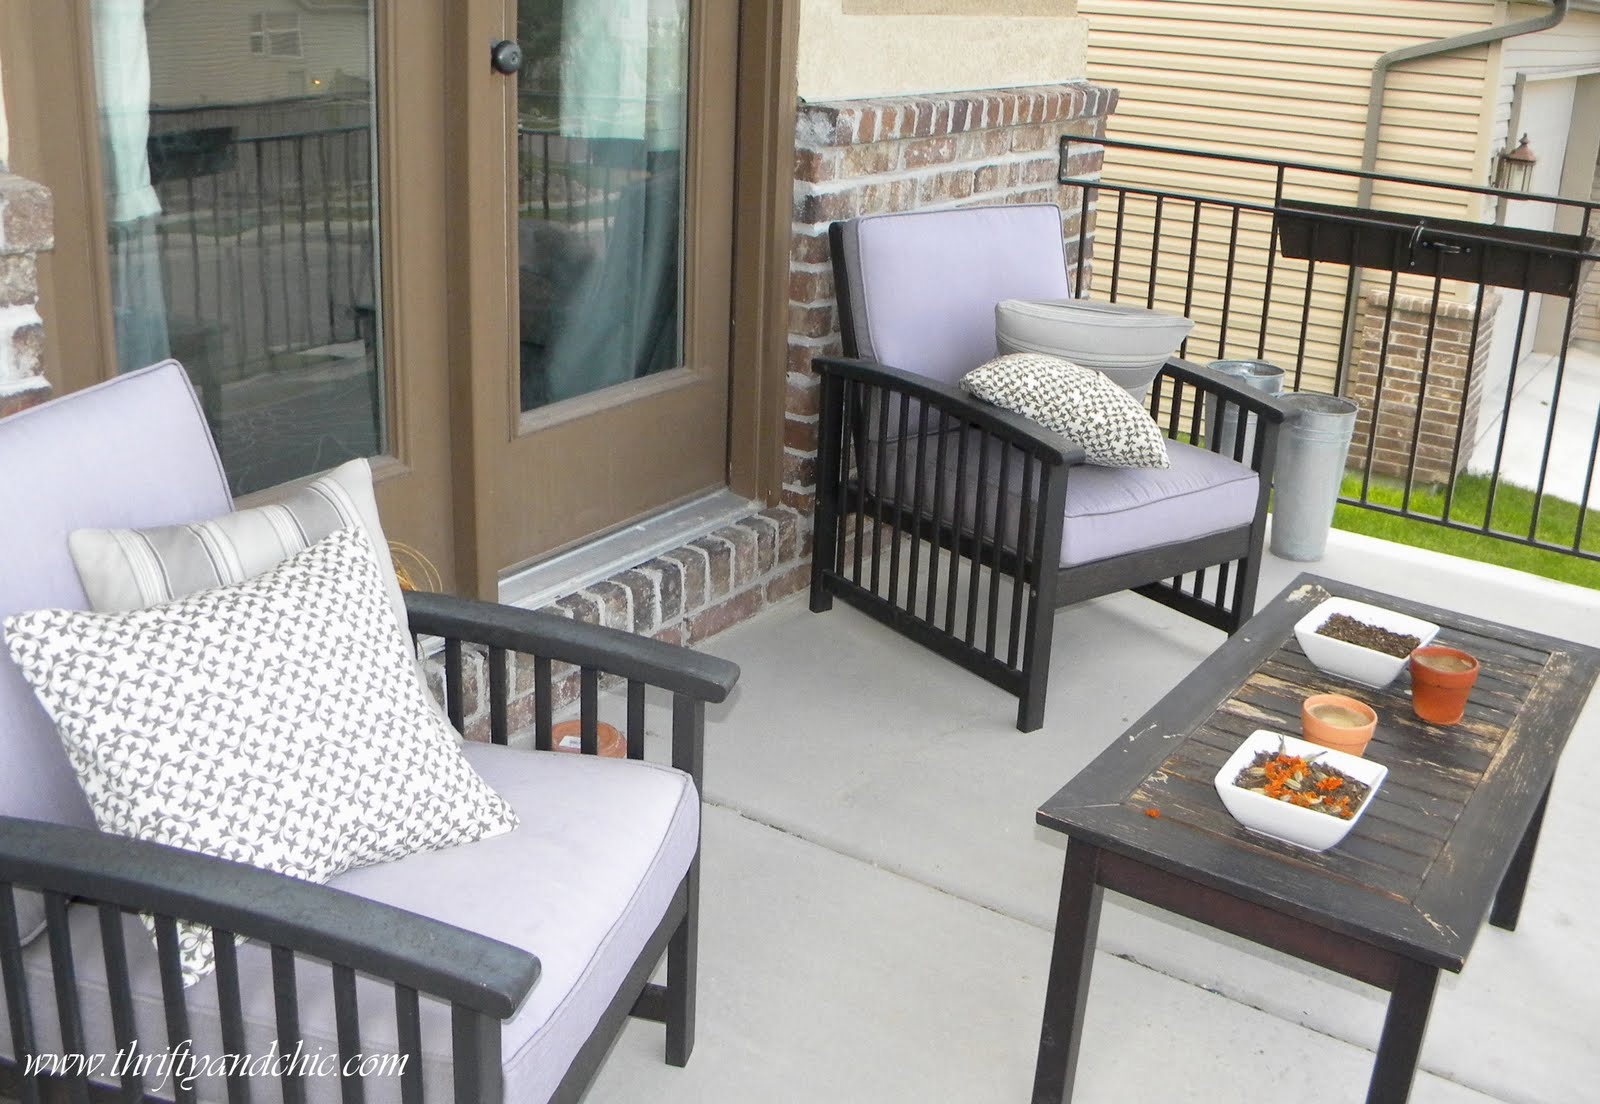 Diy Outdoor Chair Cushion Covers Plans Thrifty And Chic Projects Home Decor Re Cover A Patio